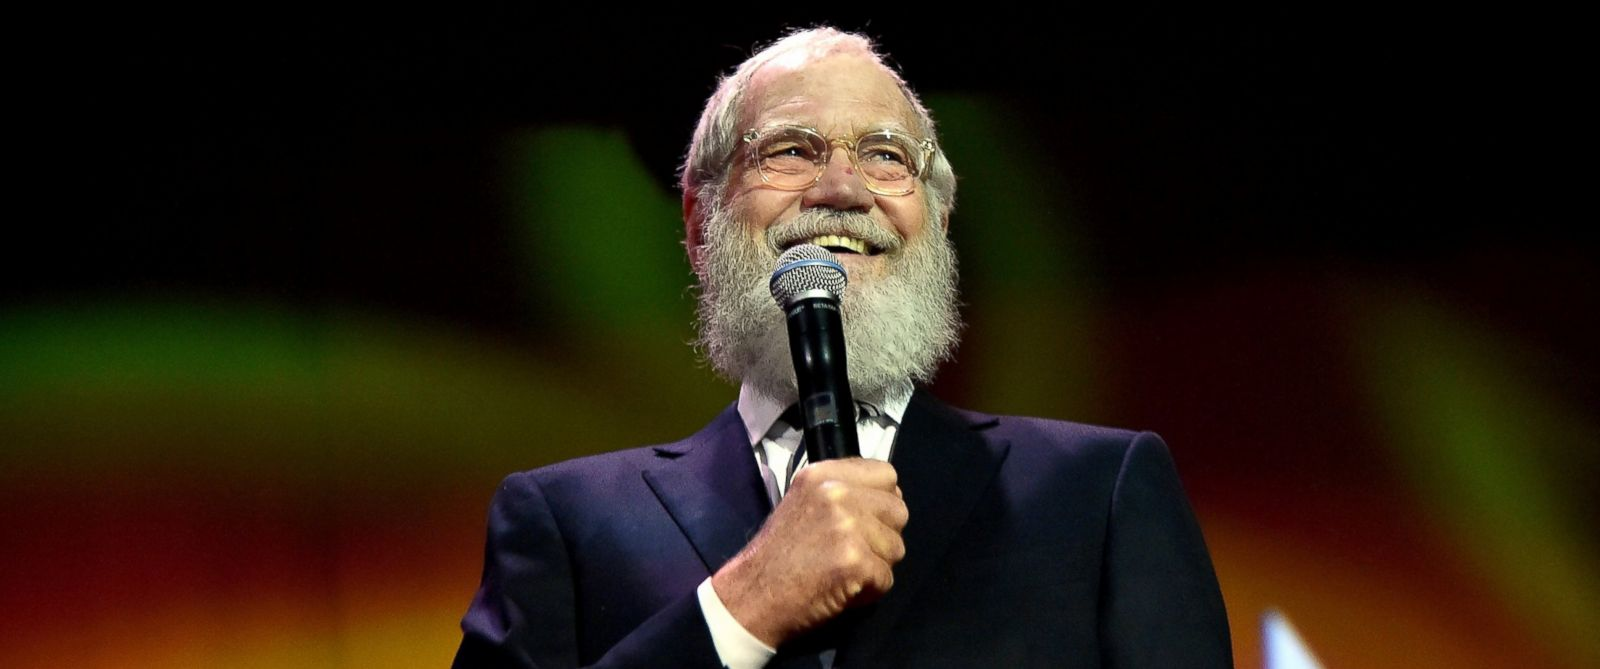 david letterman emmydavid letterman show, david letterman wiki, david letterman 2016, david letterman net worth, david letterman 2017, david letterman height, david letterman beard, david letterman young, david letterman last show date, david letterman youtube, david letterman late night show, david letterman miku, david letterman emmy, david letterman son, david letterman quotes, david letterman show jim carrey, david letterman book, david letterman forbes, david letterman episodes, david letterman trump network marketing